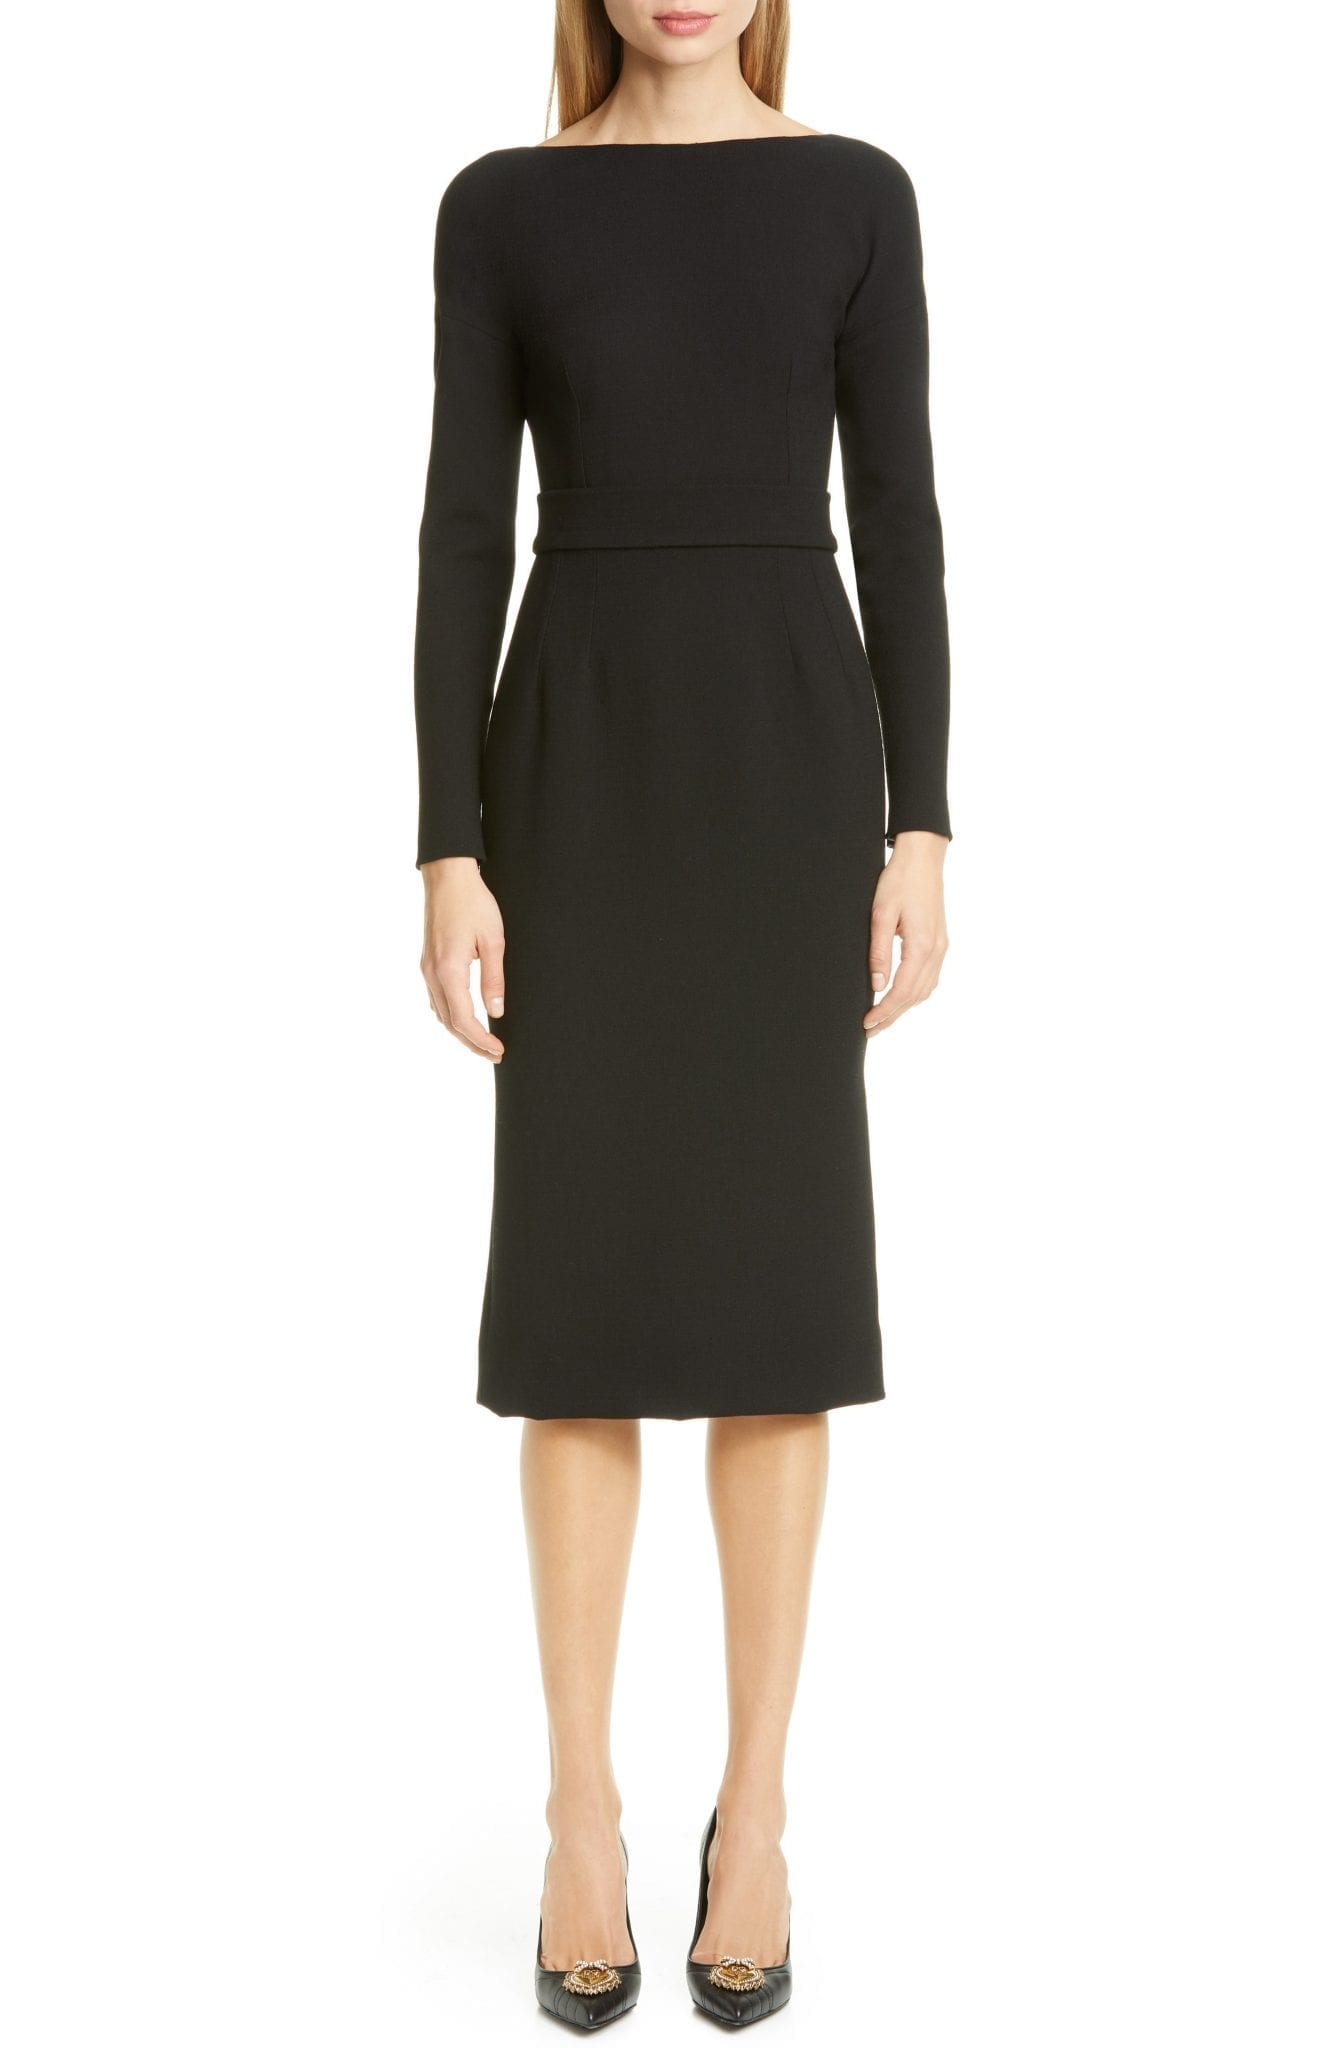 DOLCE&GABBANA Bow Back Long Sleeve Wool Blend Crepe DressDOLCE&GABBANA Bow Back Long Sleeve Wool Blend Crepe Dress